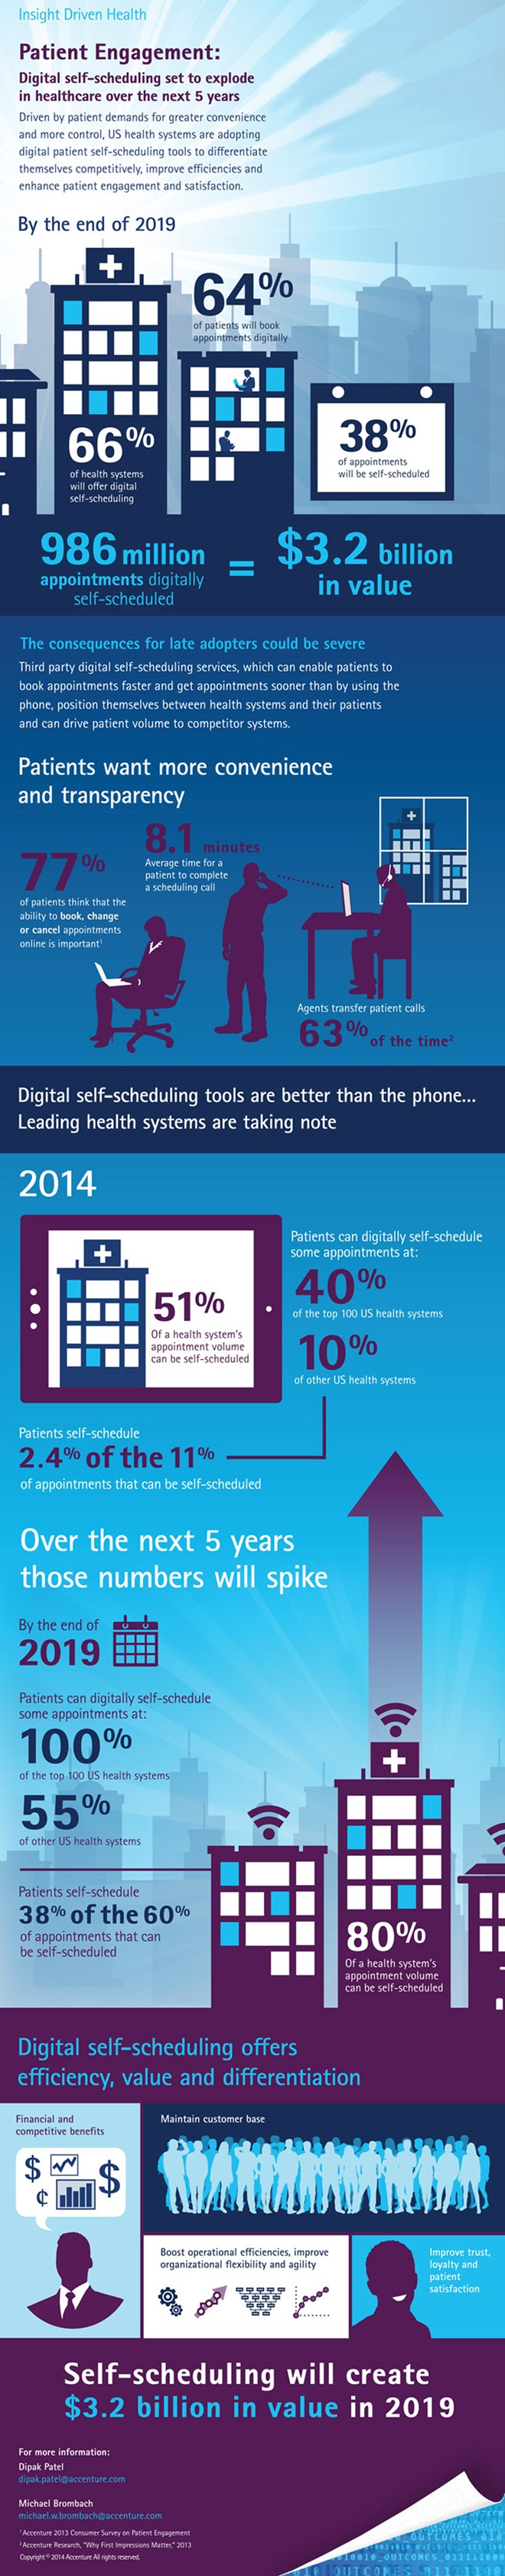 infographic, patients, self-scheduling